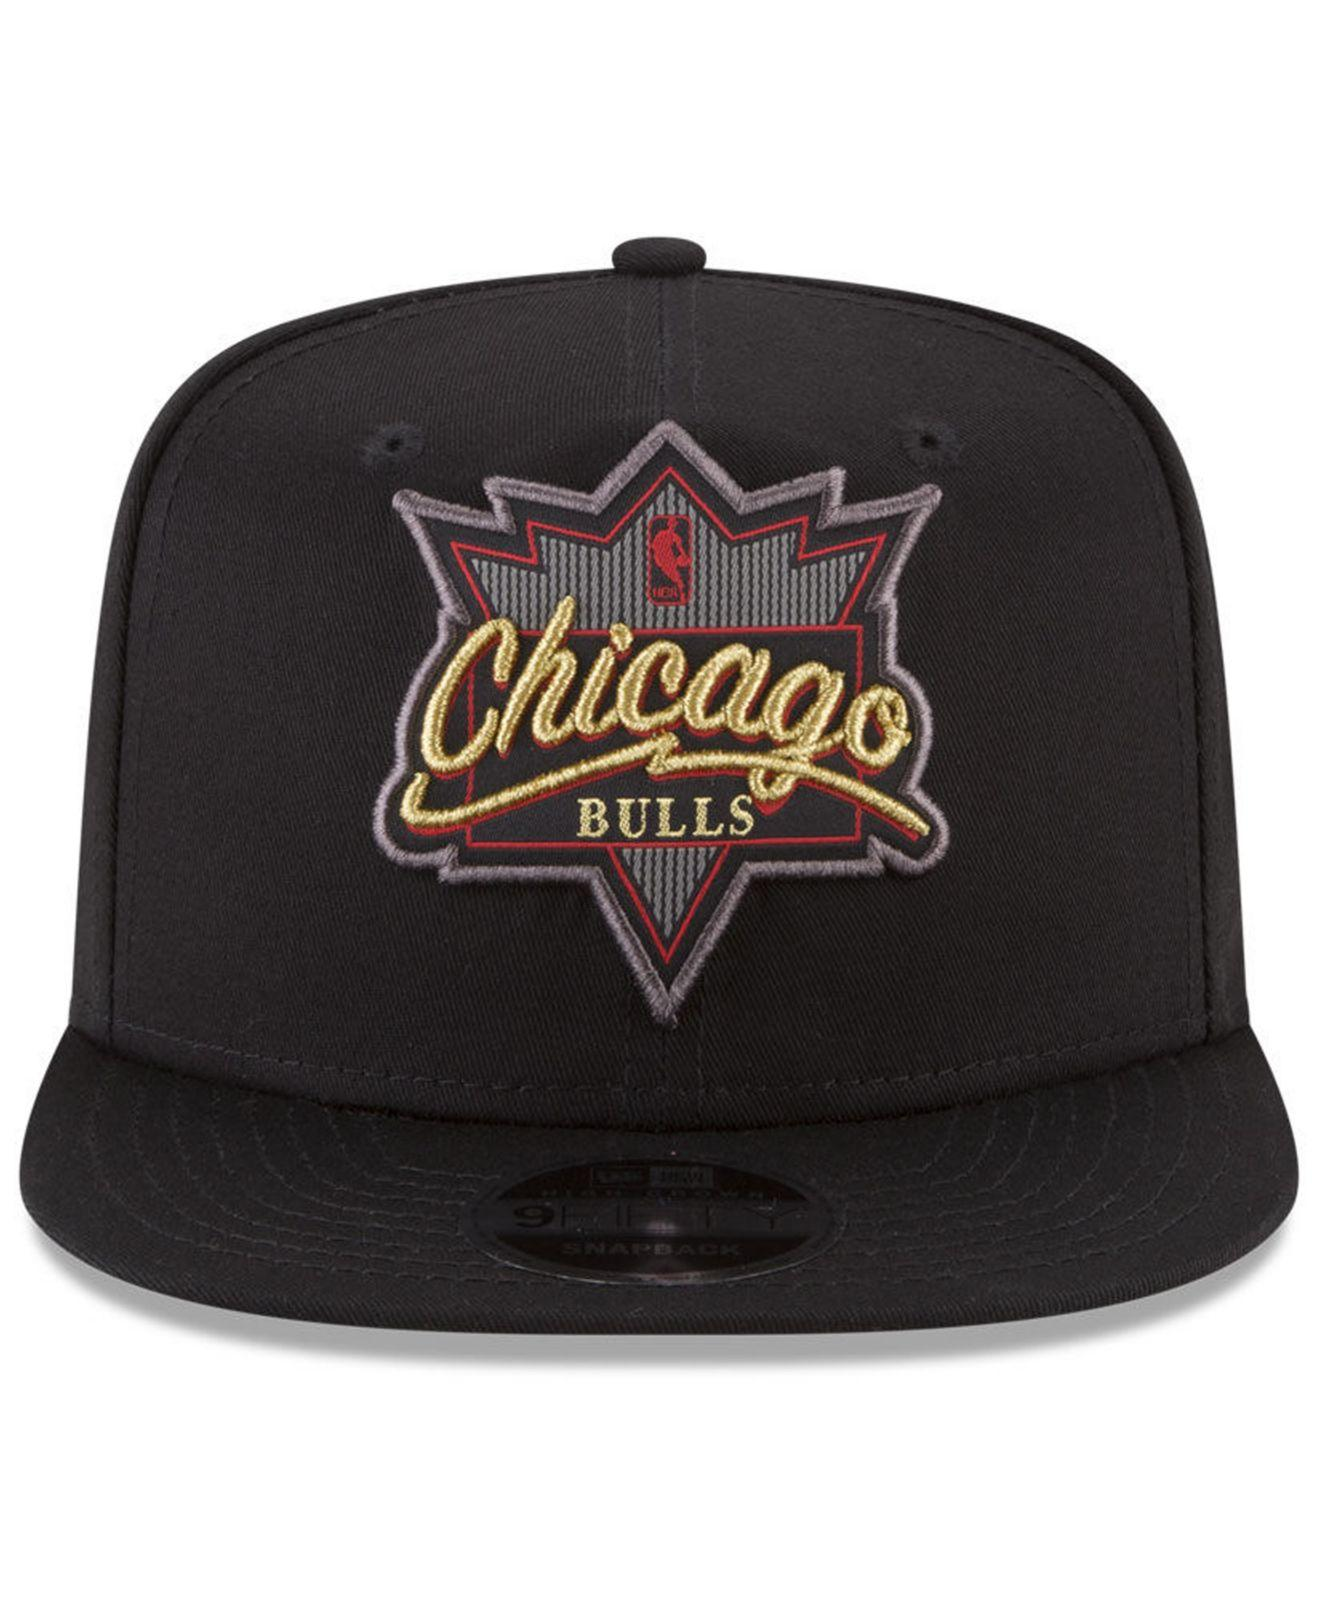 save off 2b1f9 767ce ... usa lyst ktz chicago bulls retro showtime 9fifty snapback cap in black  for men 7666b 96f9b